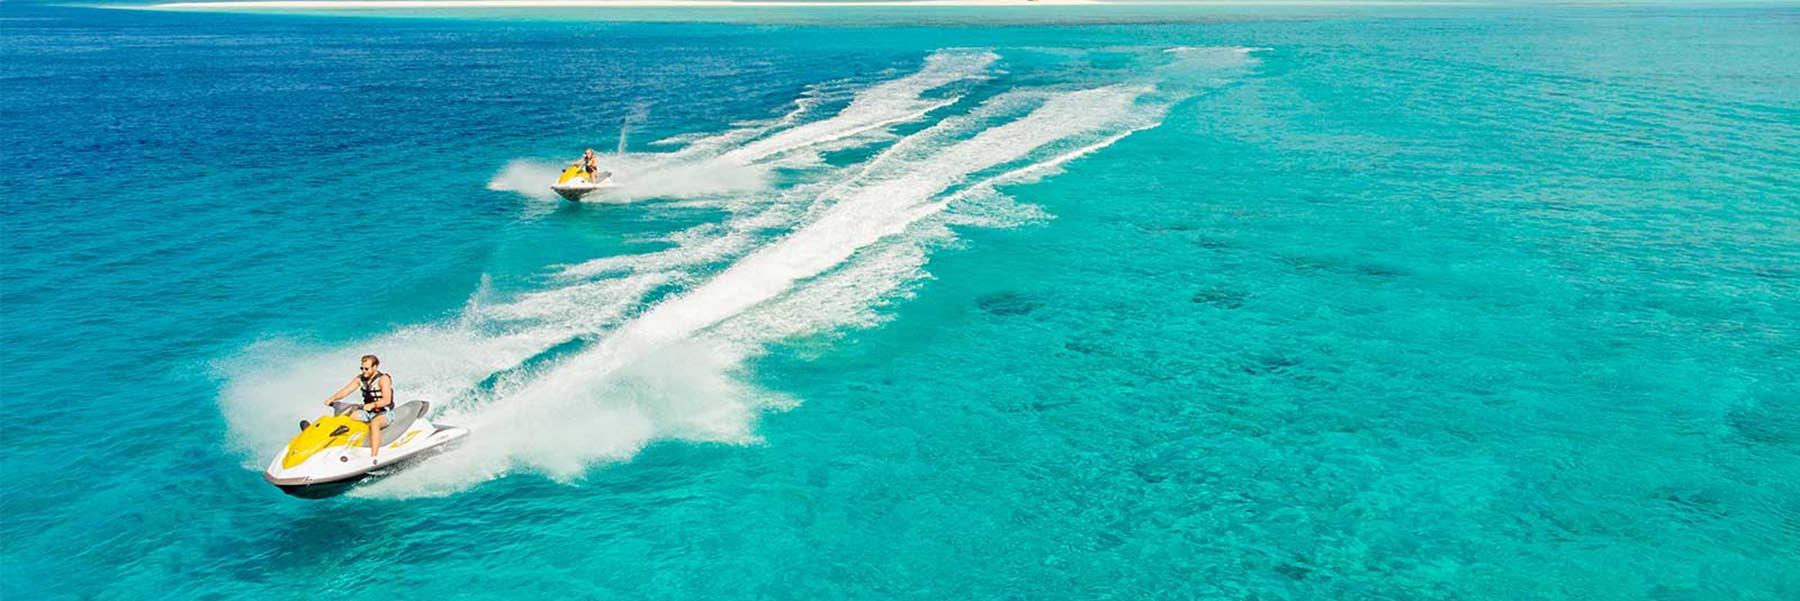 Enjoy water sports during Beach holidays